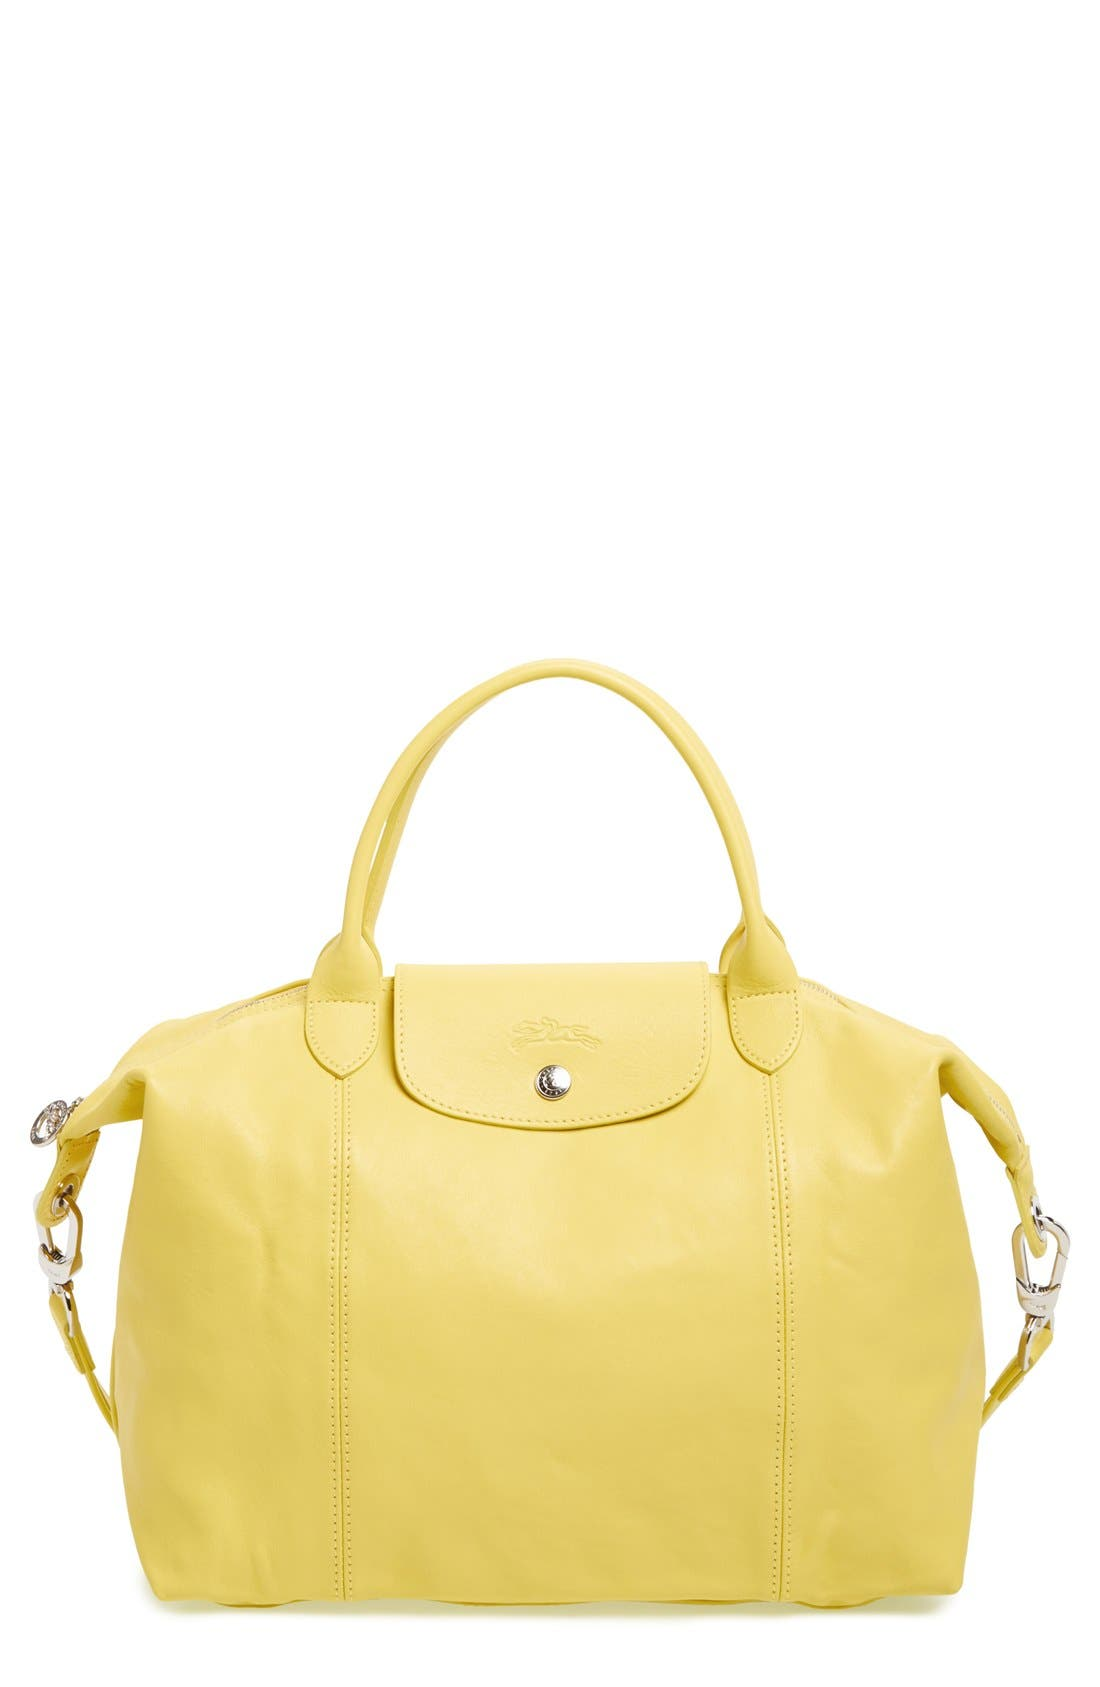 Medium 'Le Pliage Cuir' Leather Top Handle Tote,                             Main thumbnail 35, color,